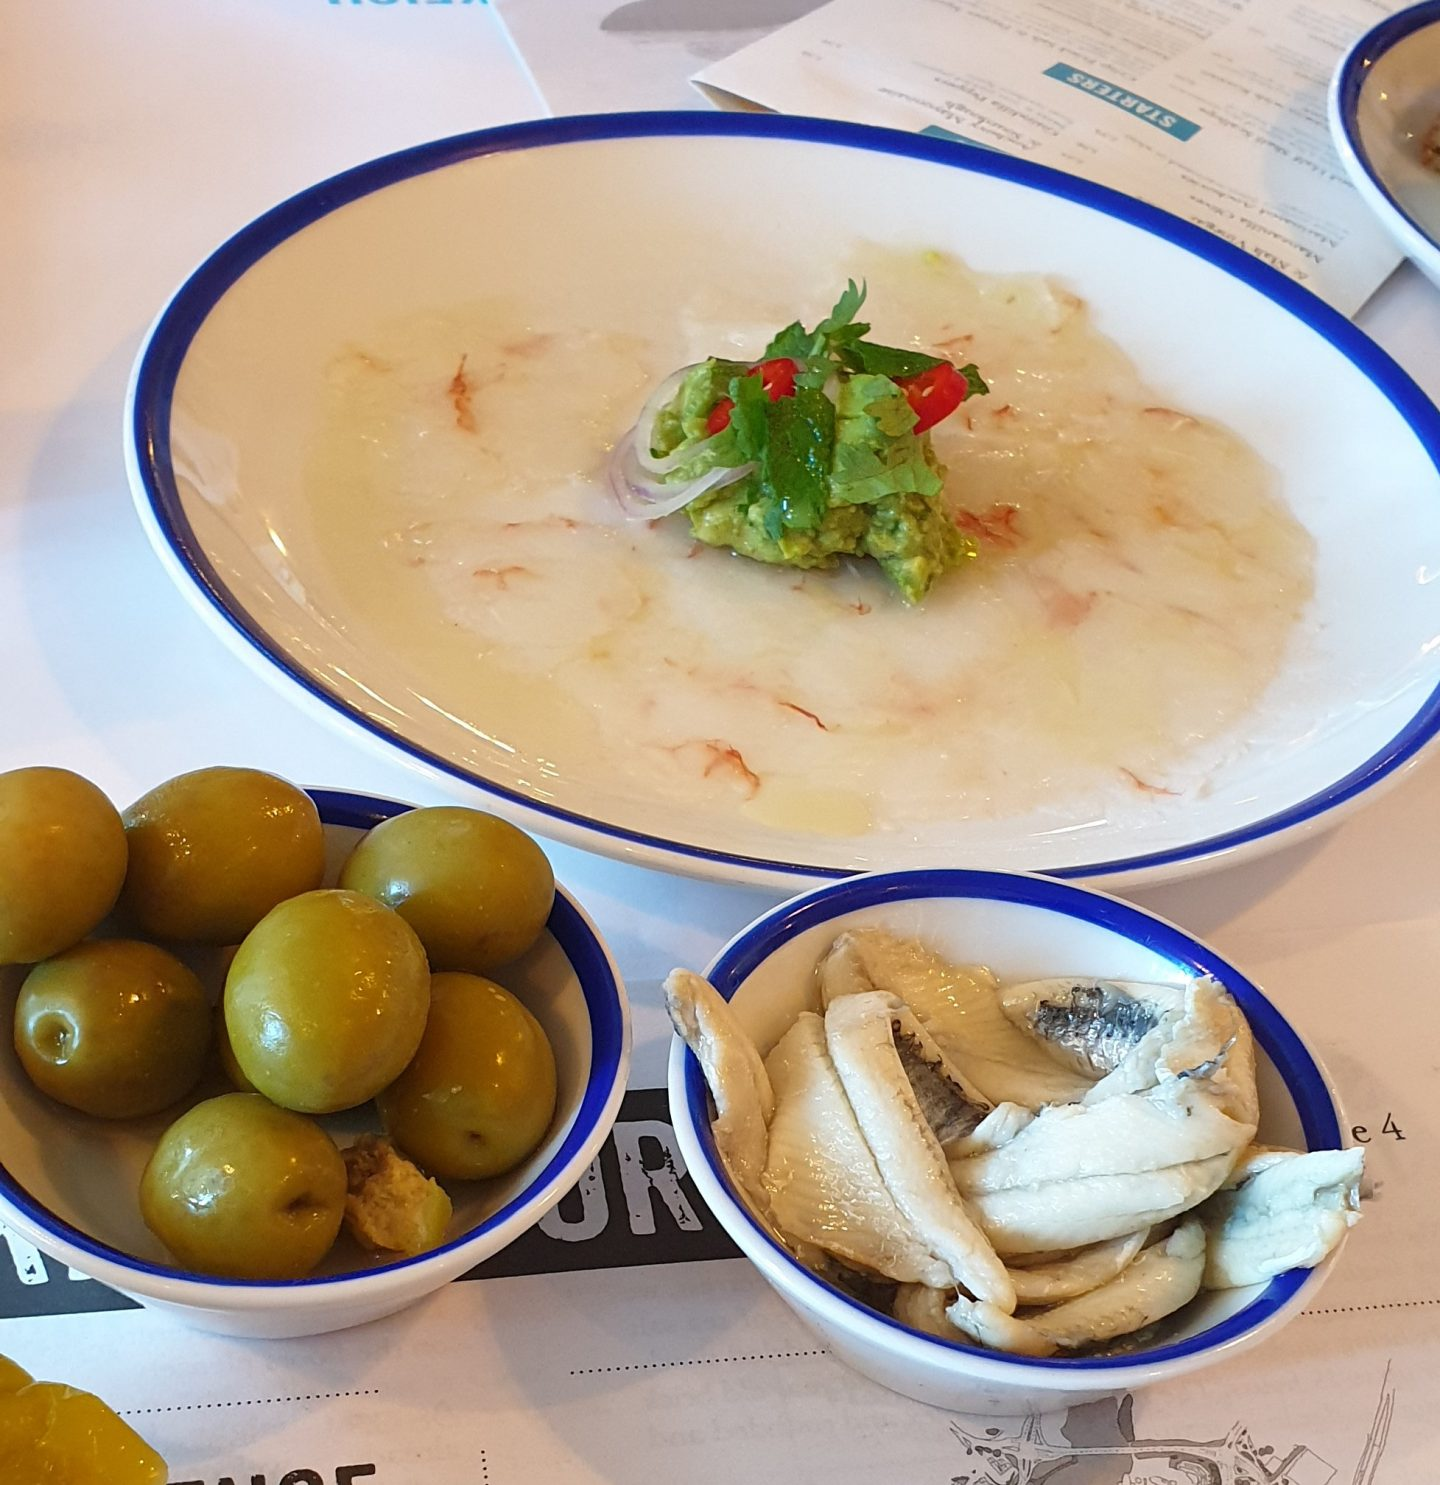 Wild Prawn Carpaccio, with some nibbles – Manzanilla olives & Anchovies